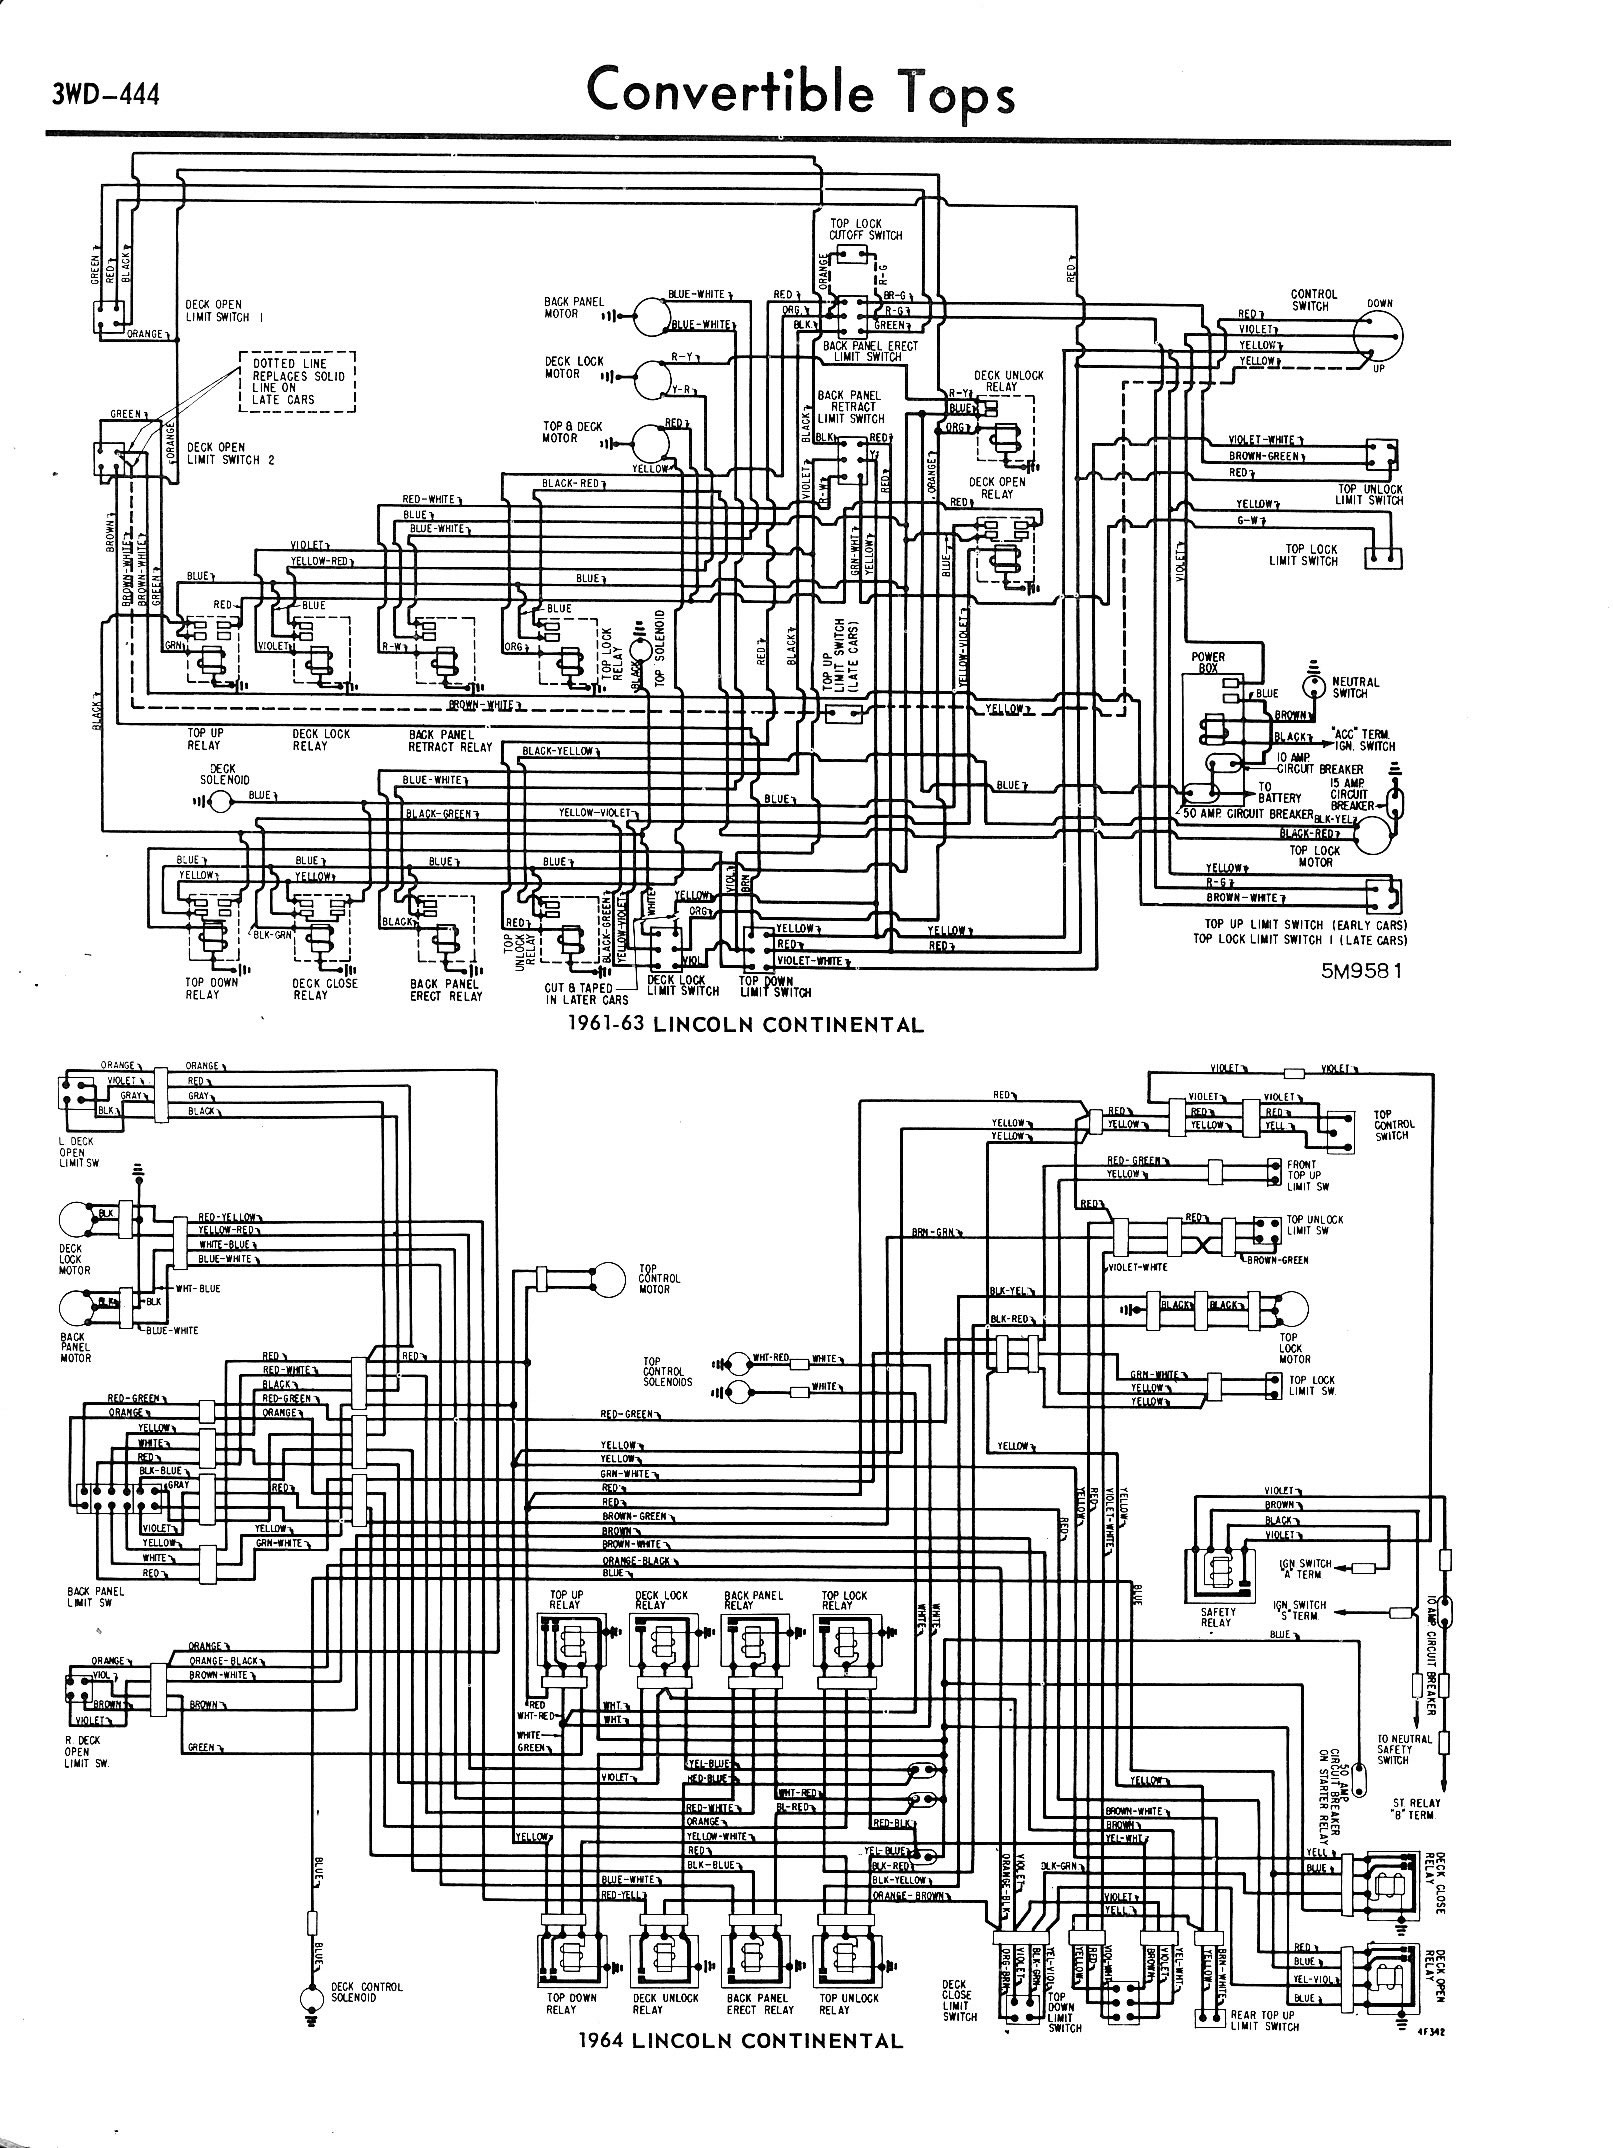 66 Ford Falcon Wiring Diagrams Free Download Diagram Stop Light 1964 69 Manual E Booksfree Schematic Simple Brake